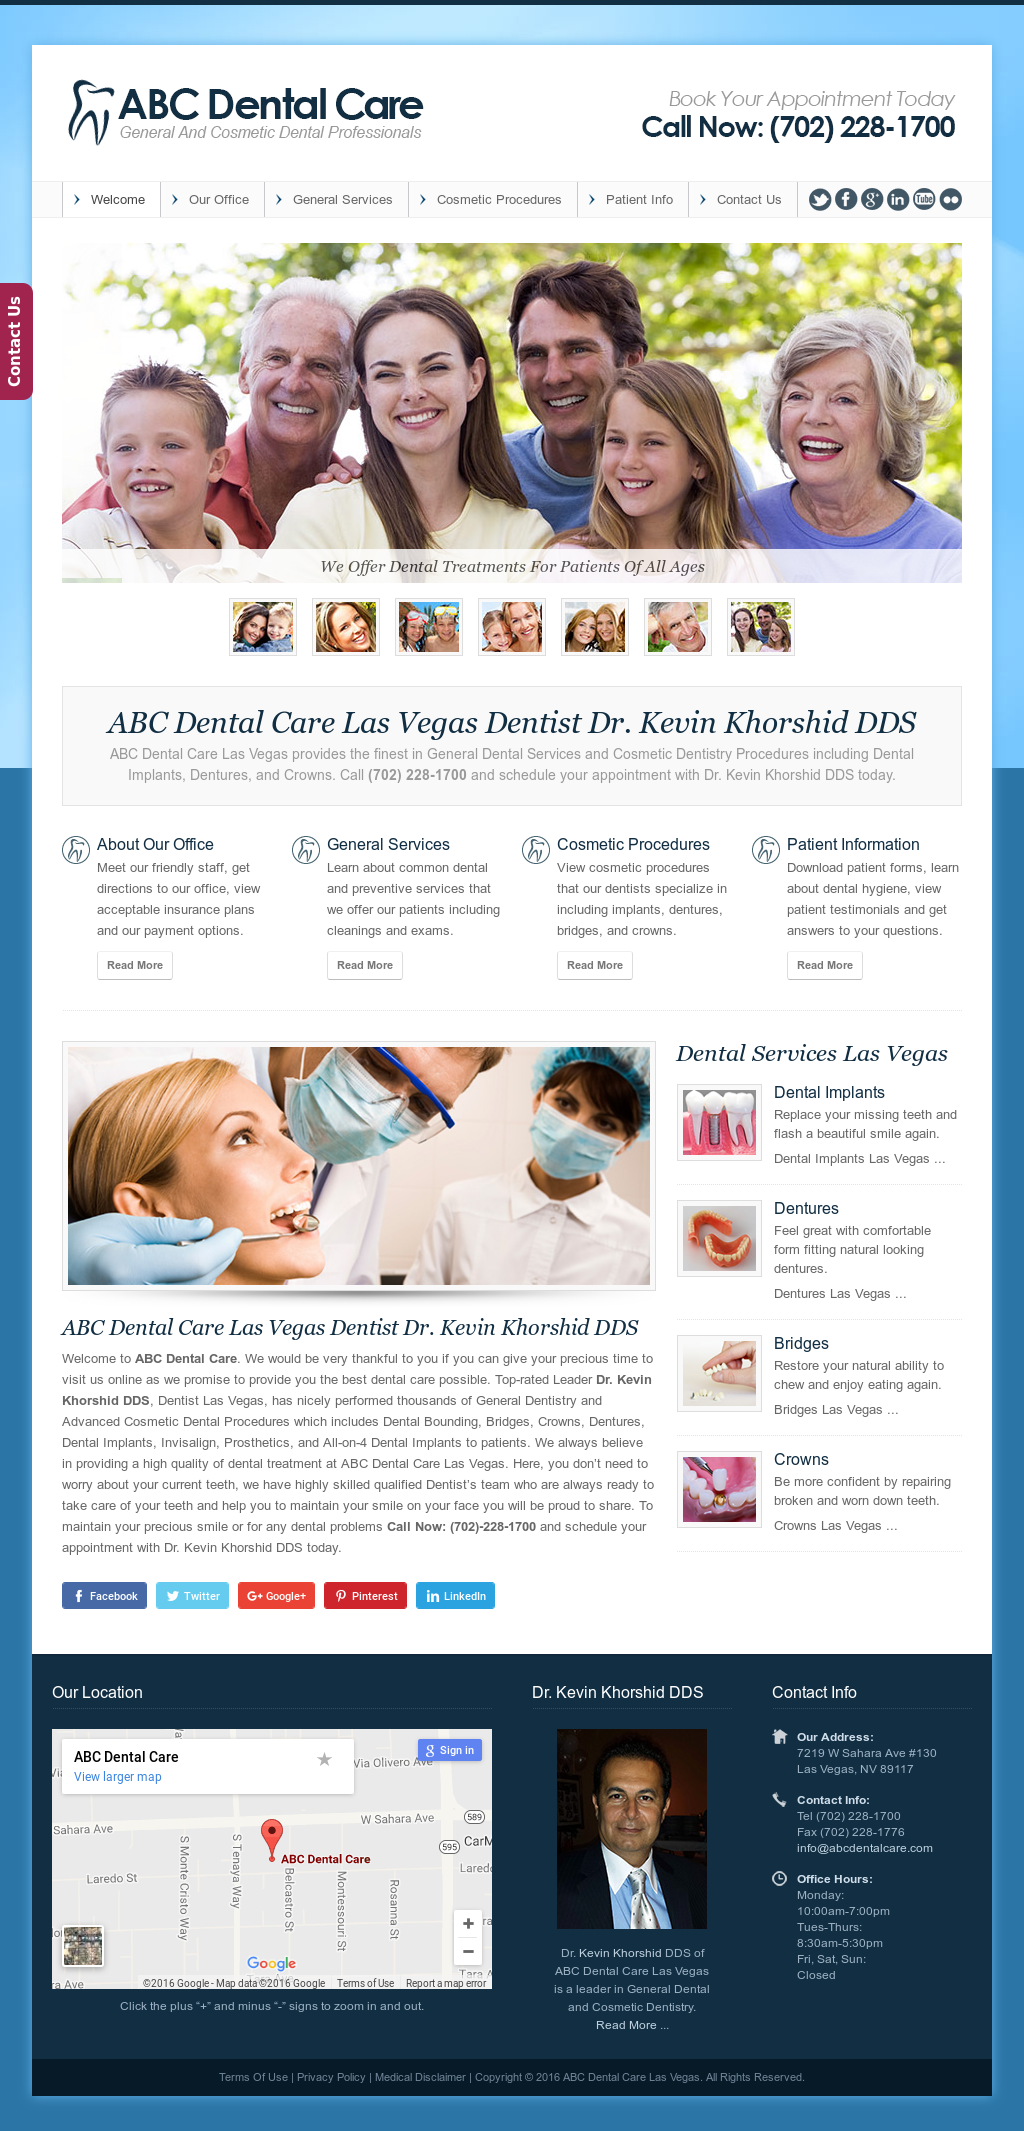 Abc Dental Care abc dental care competitors, revenue and employees - owler